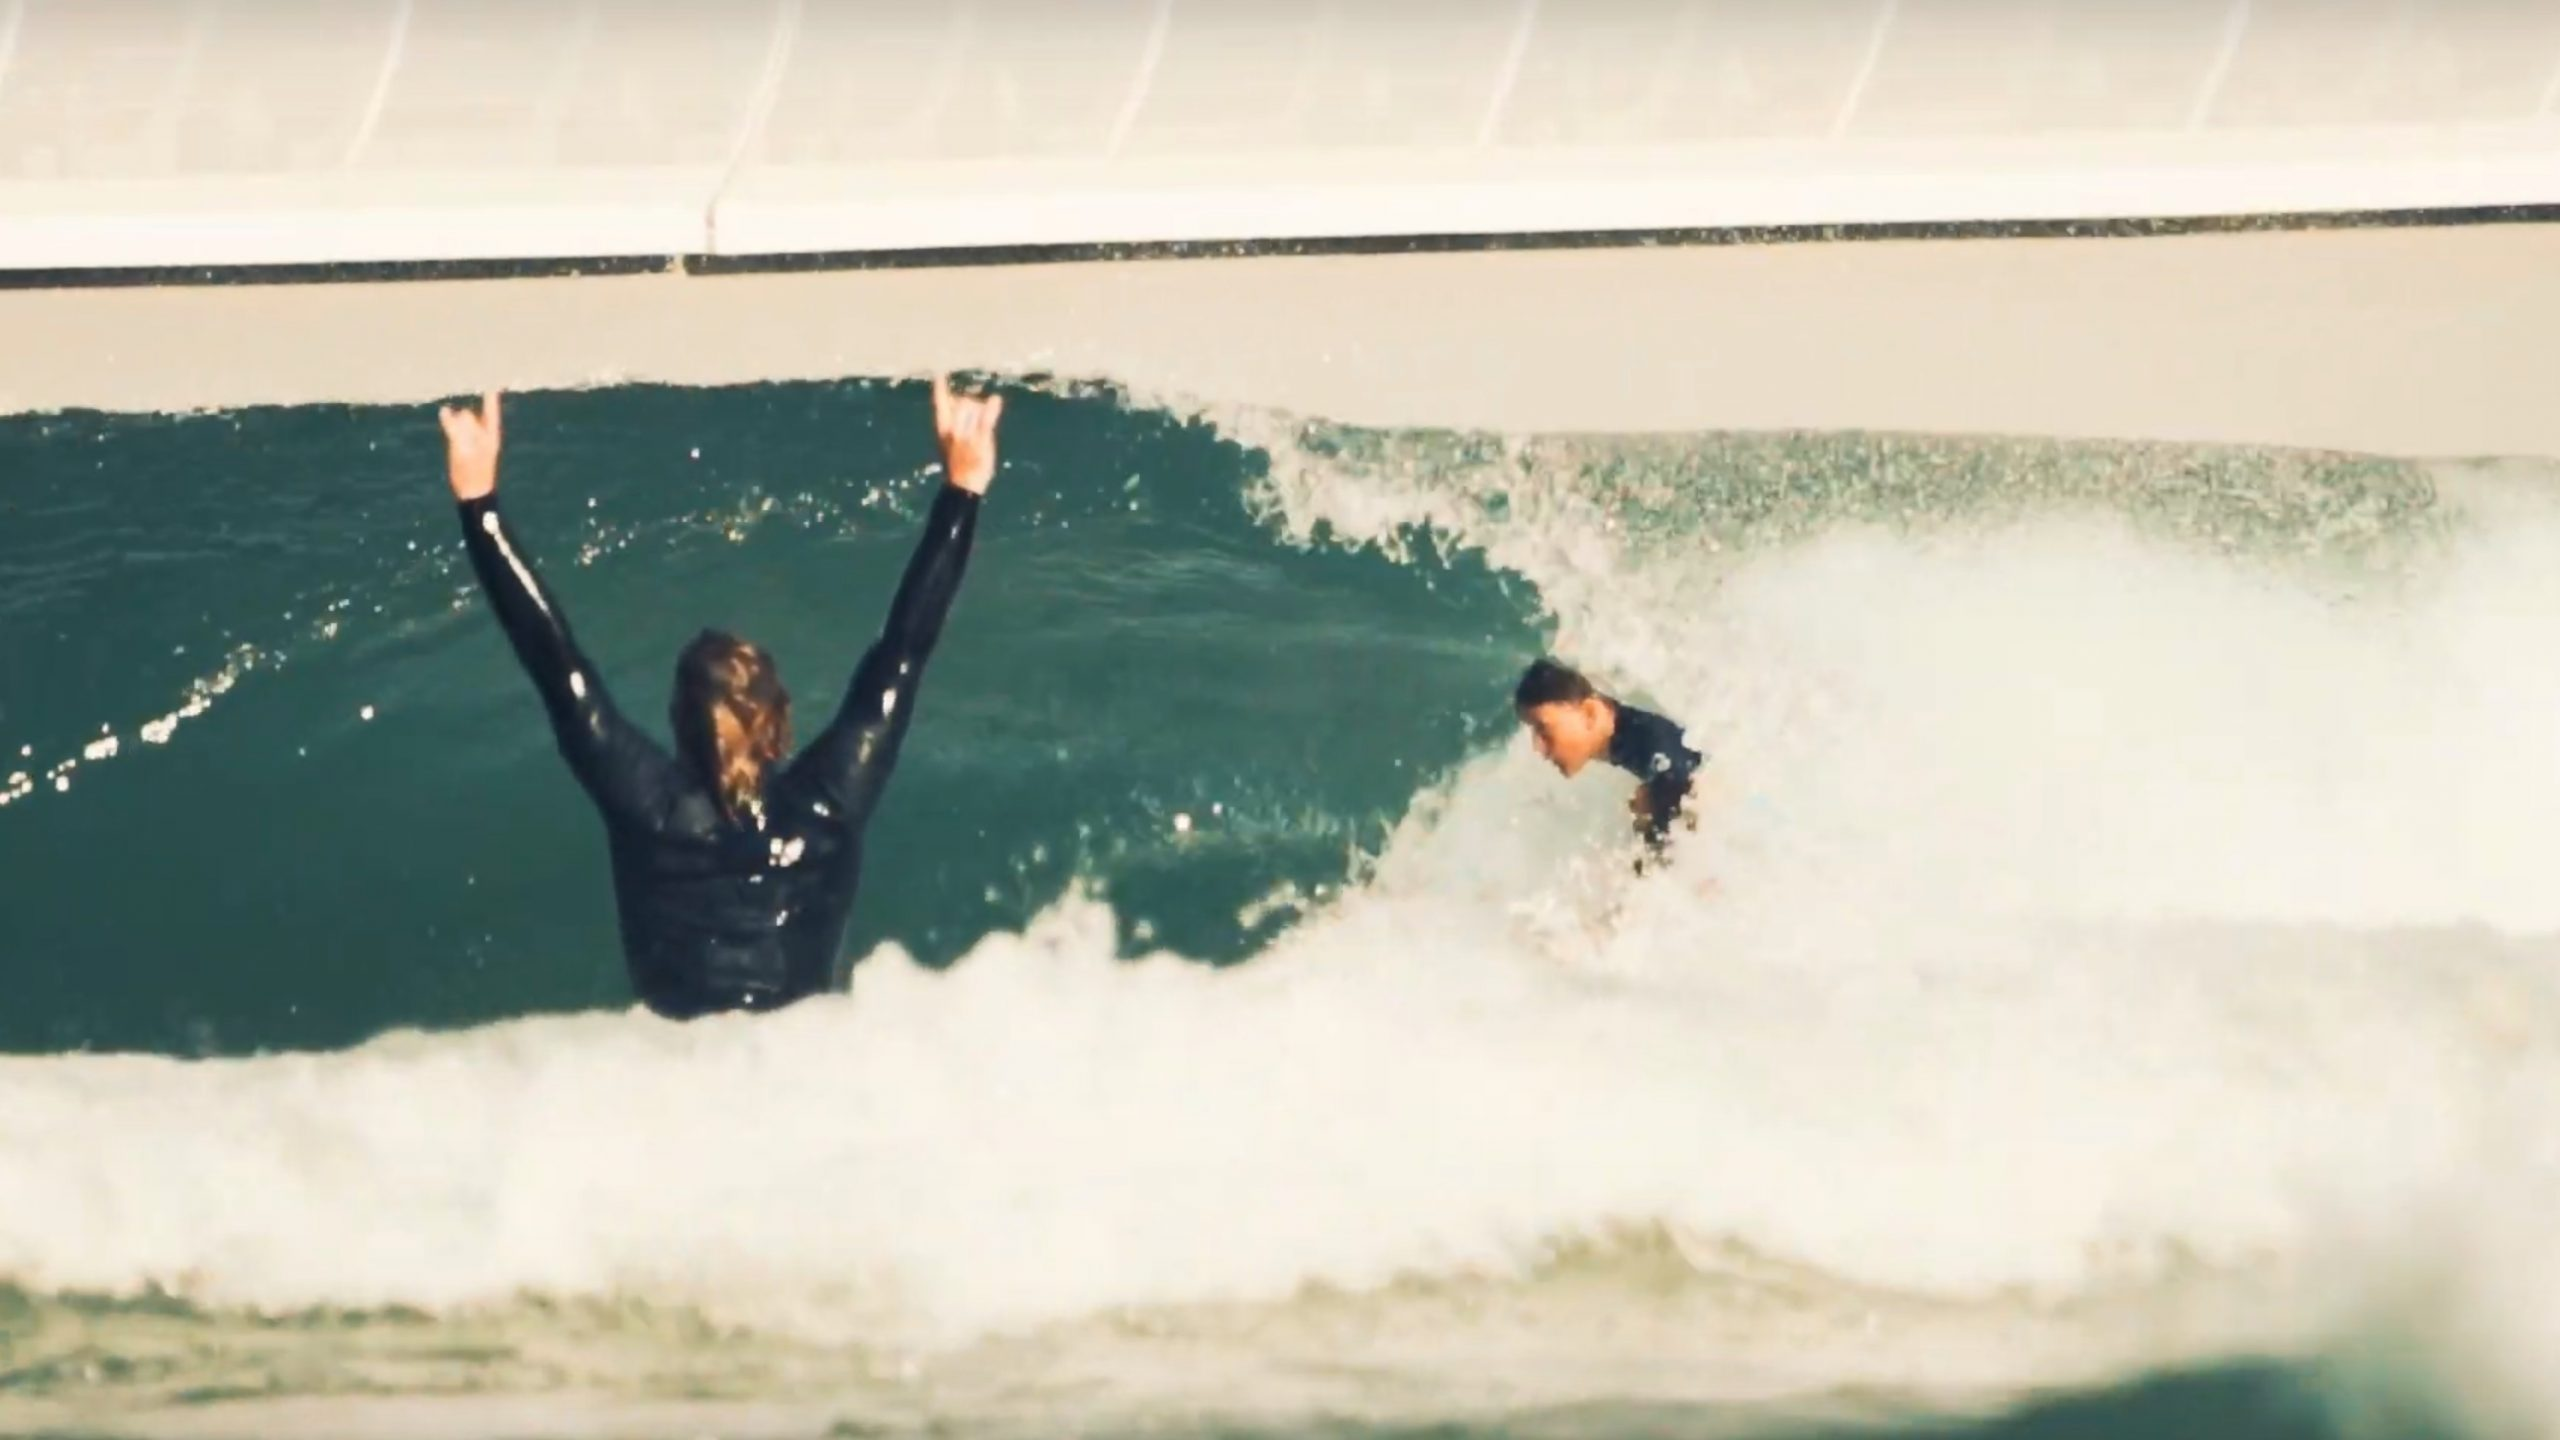 lukas skinner surfs a wave pool